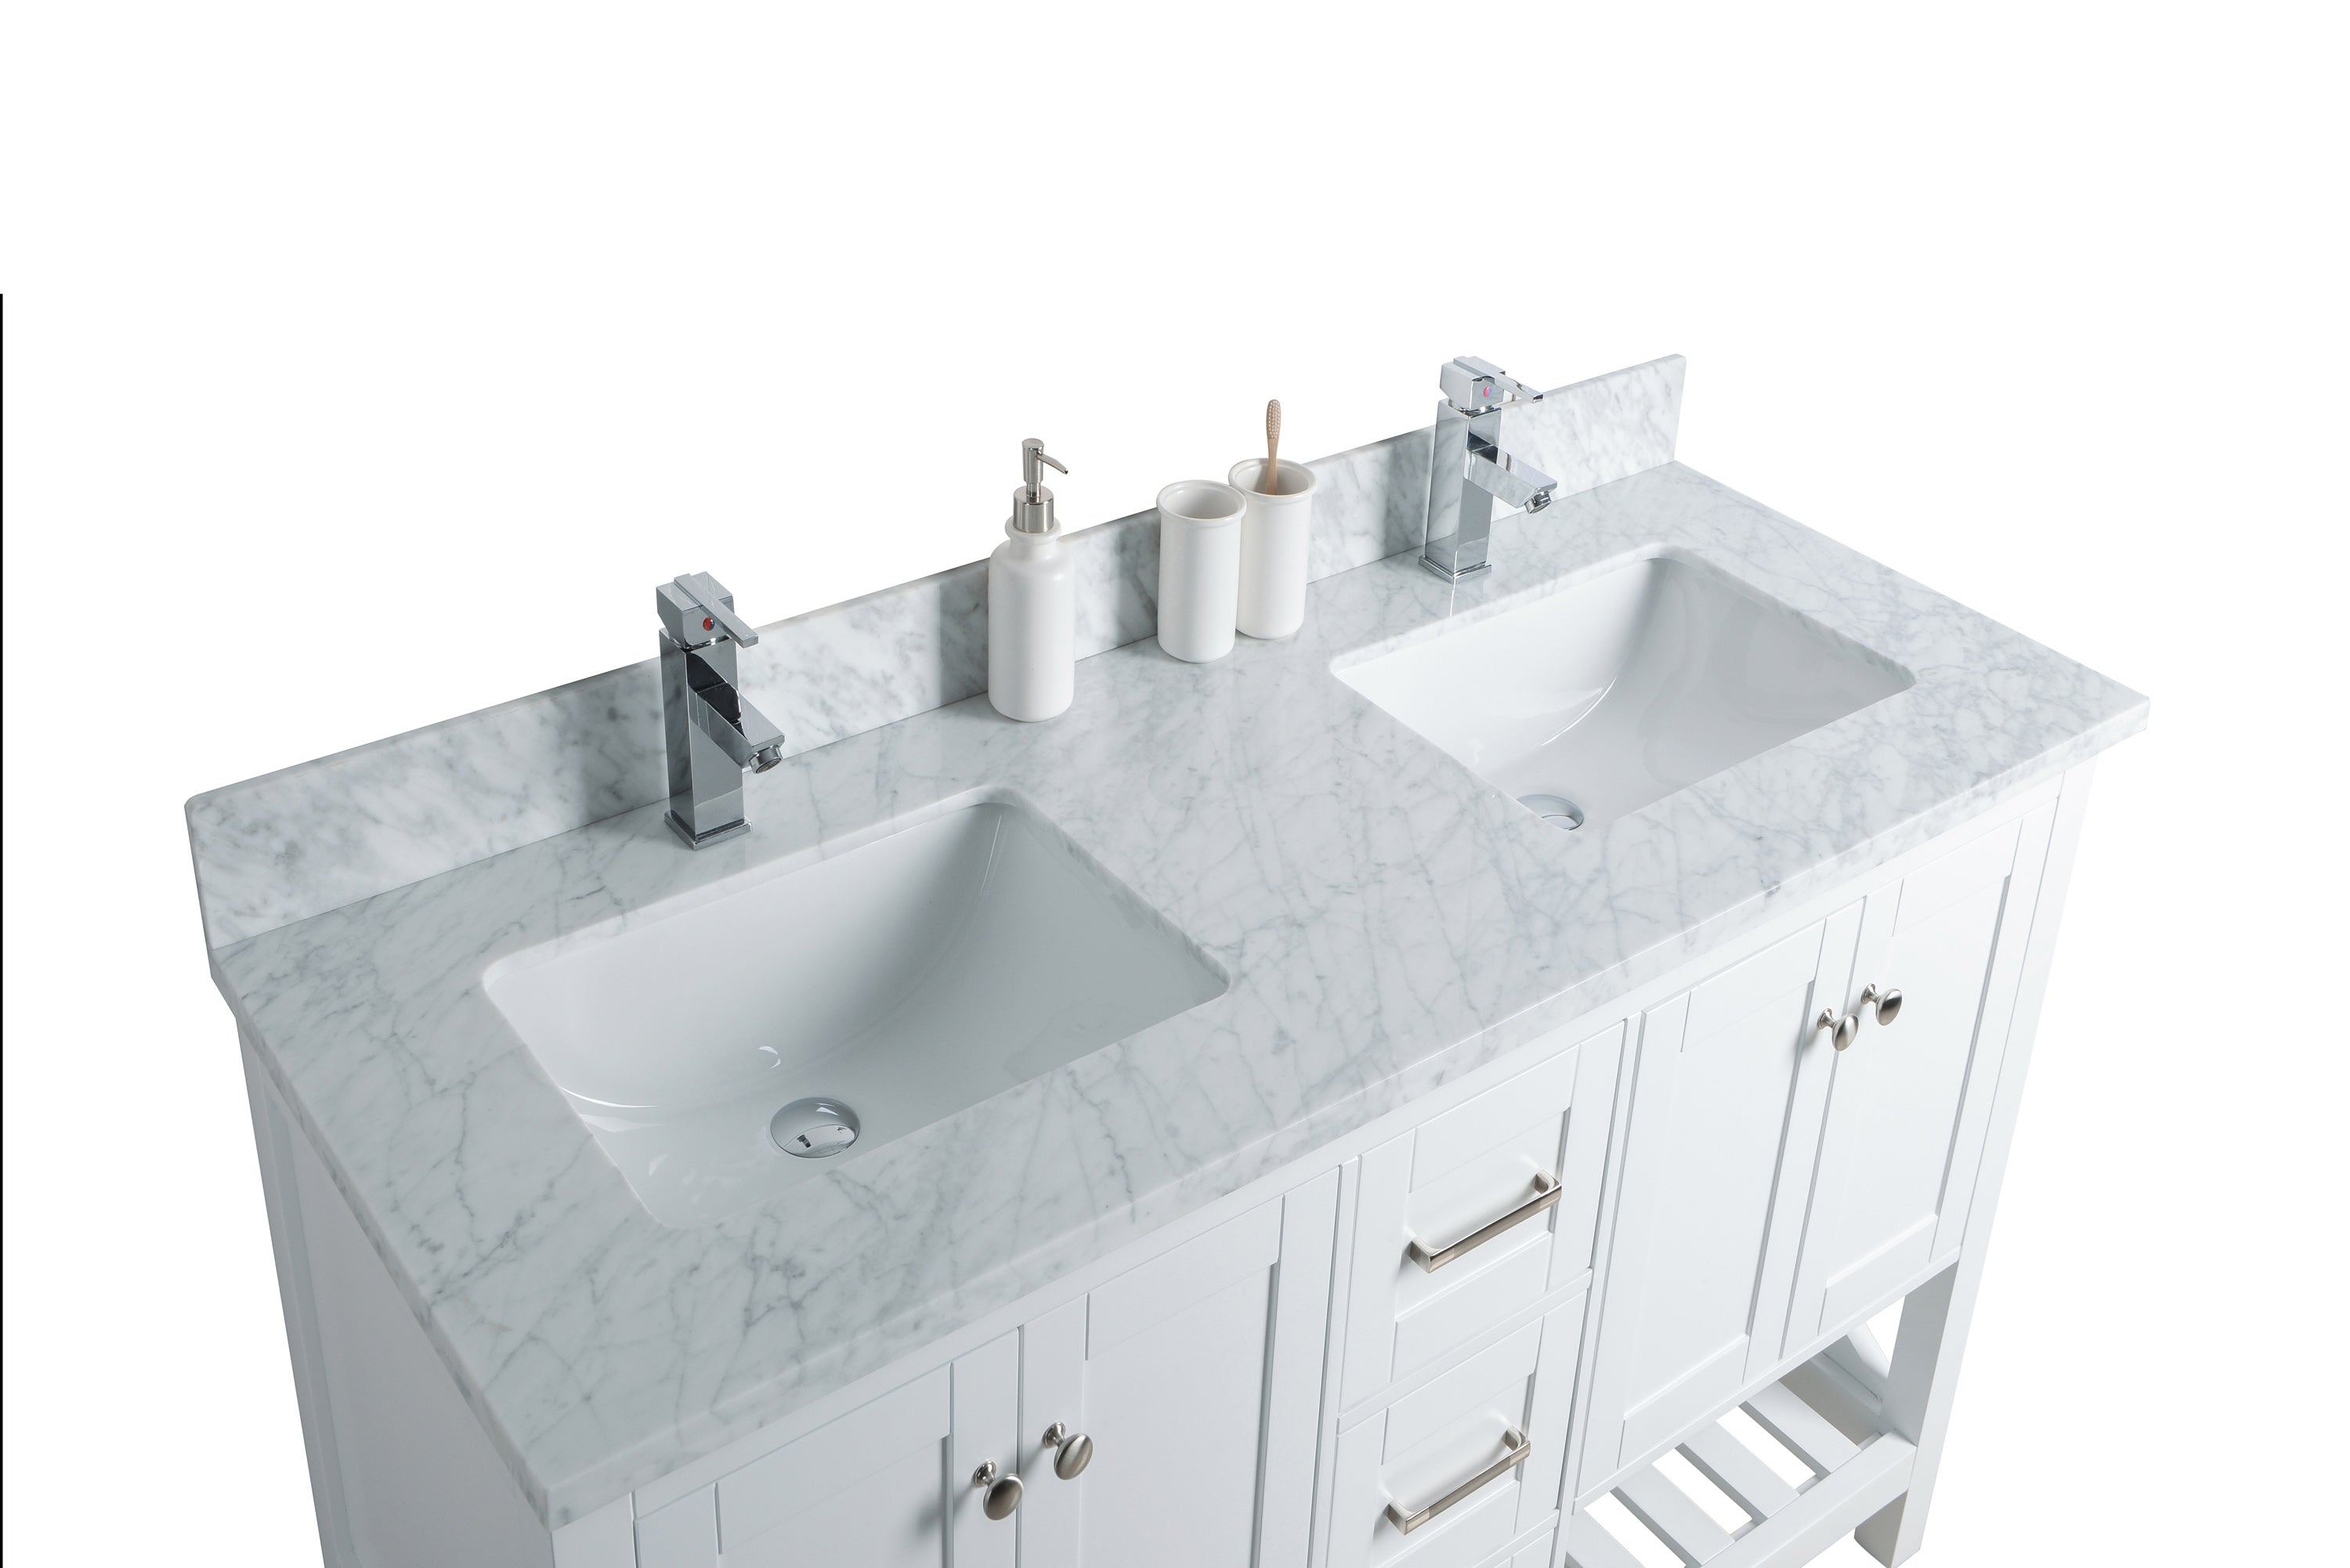 54 Taiya Bathroom Vanity In Toga White Double Sink Broadway Vanities